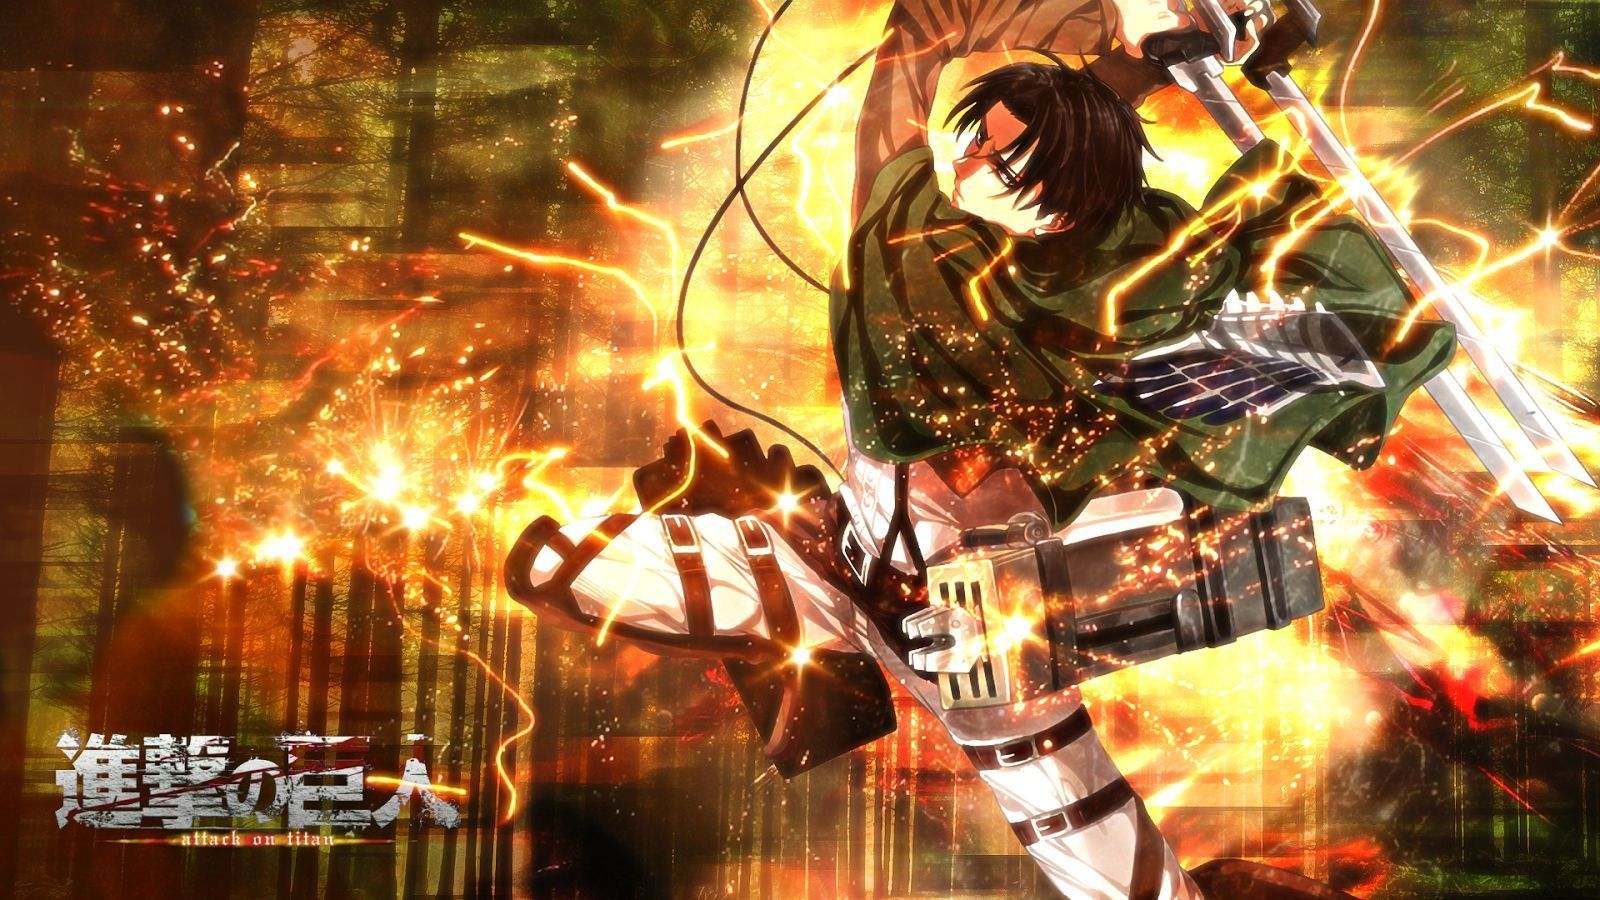 14 4 Attack On Titan Wall Poster 22 X 34 Inch High Quality Fast Shipping 105 Ebay Electronics Attack On Titan Attack On Titan Levi Anime Wallpaper